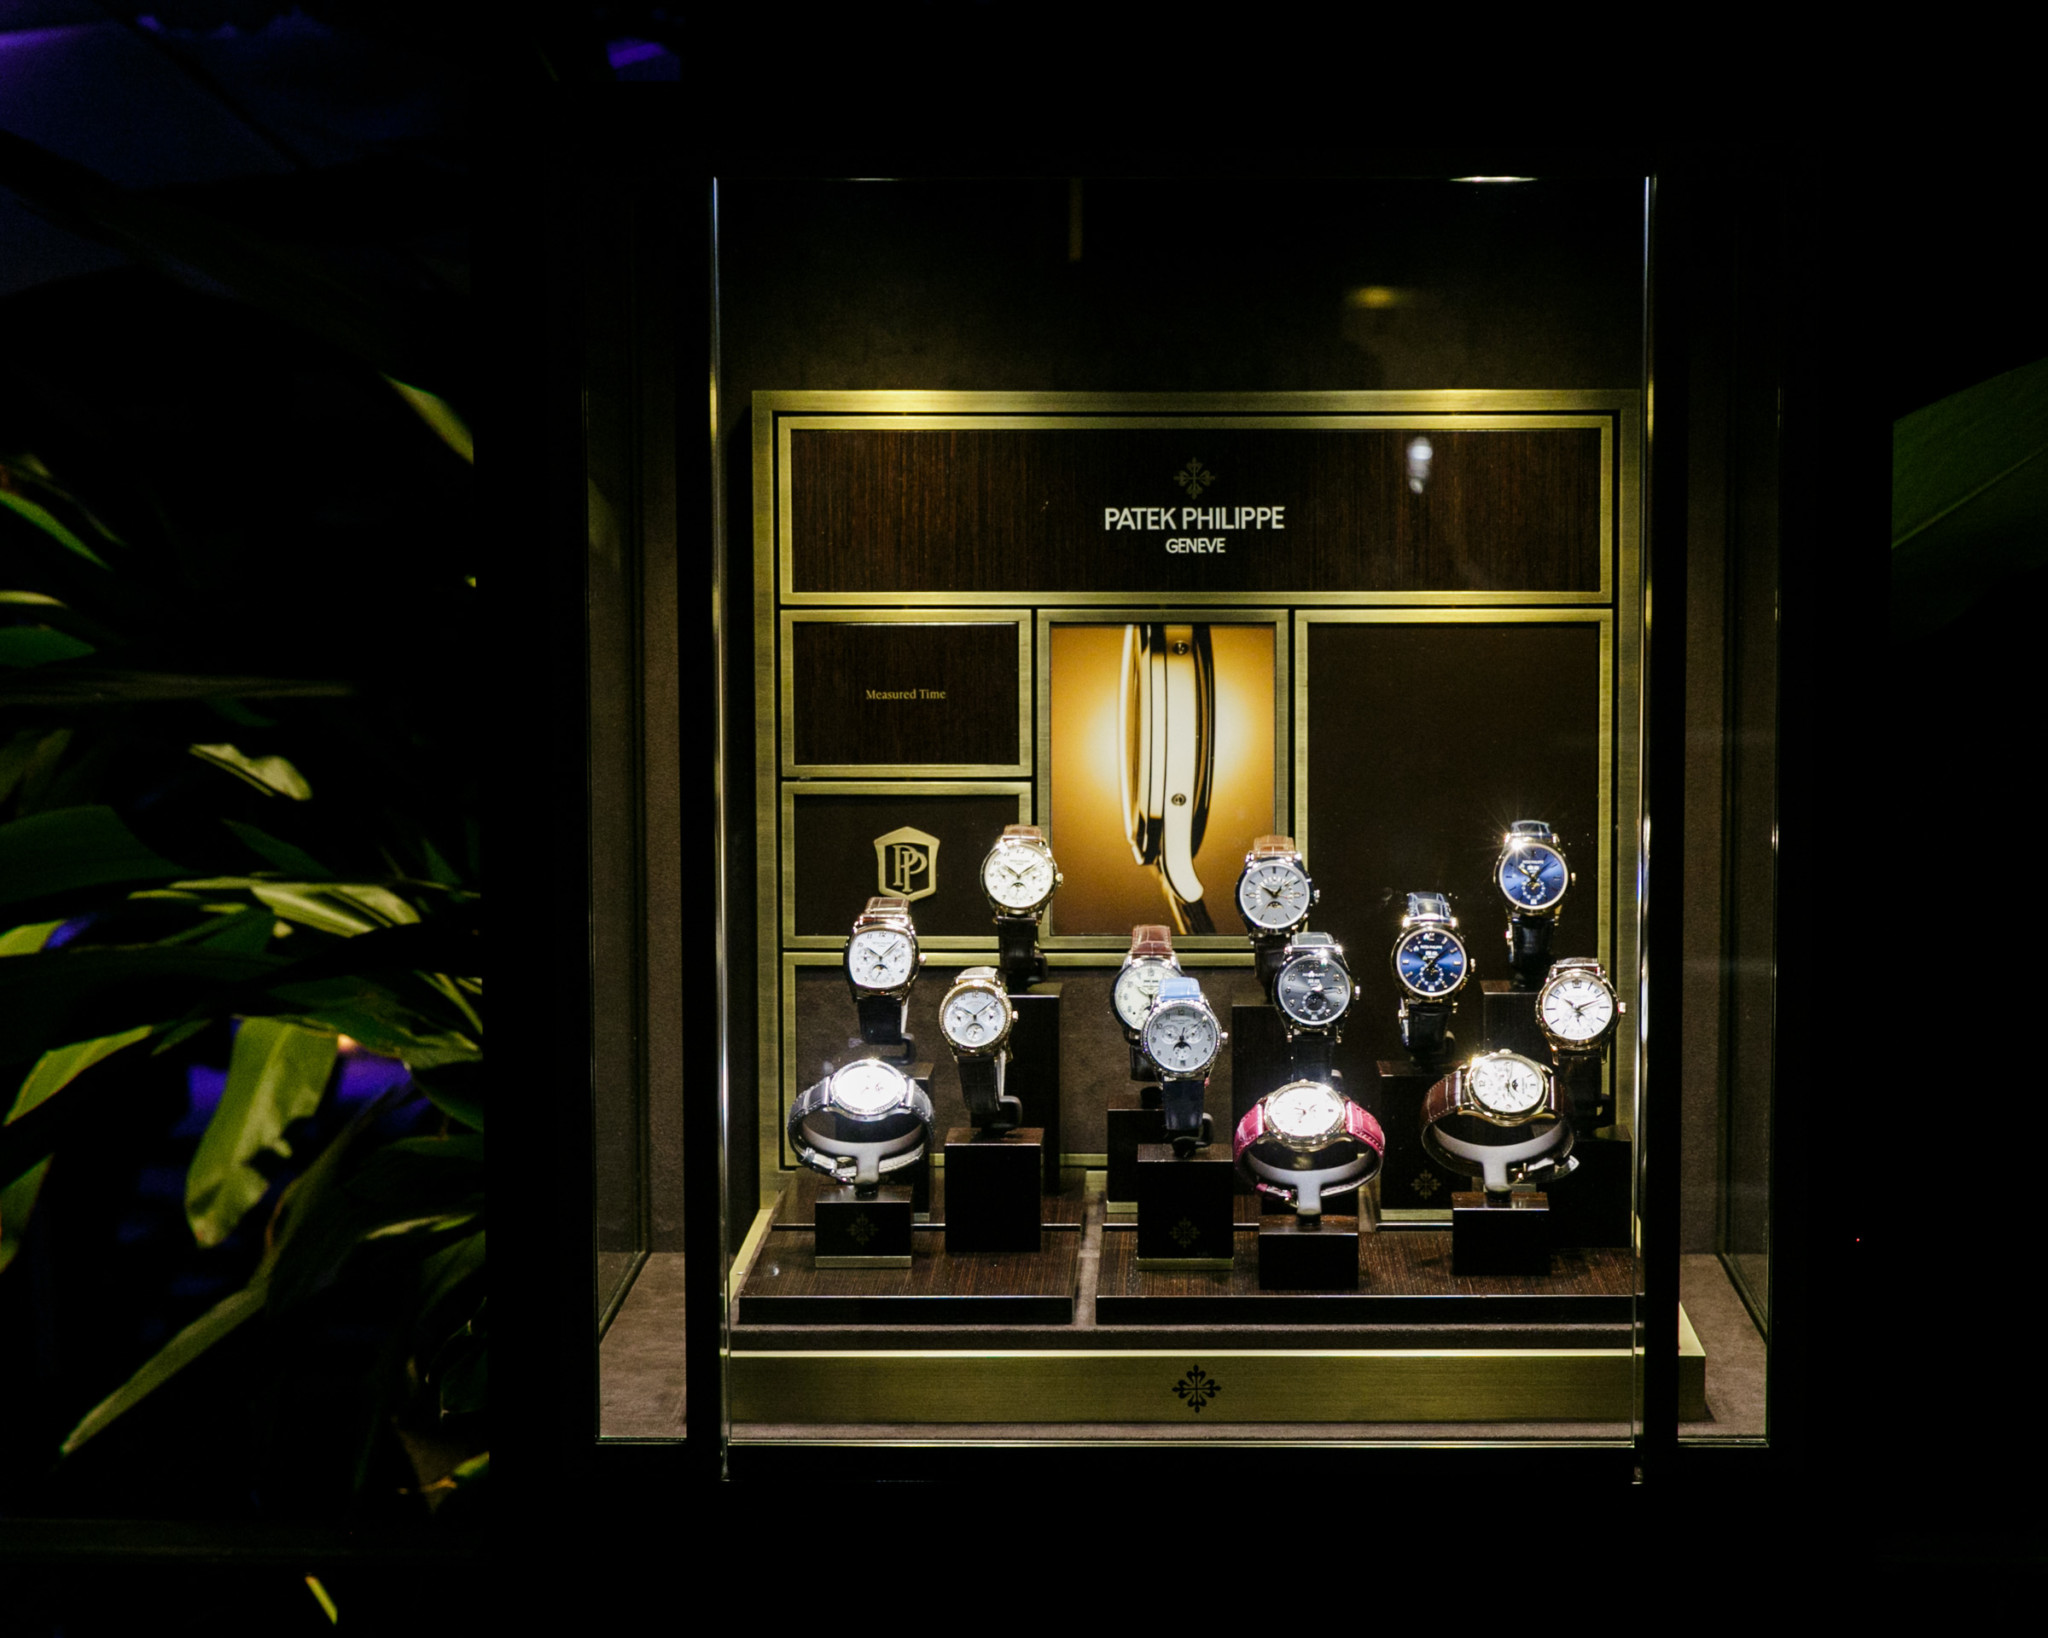 Patek-Philippe-timepieces-showcased-at-the-event